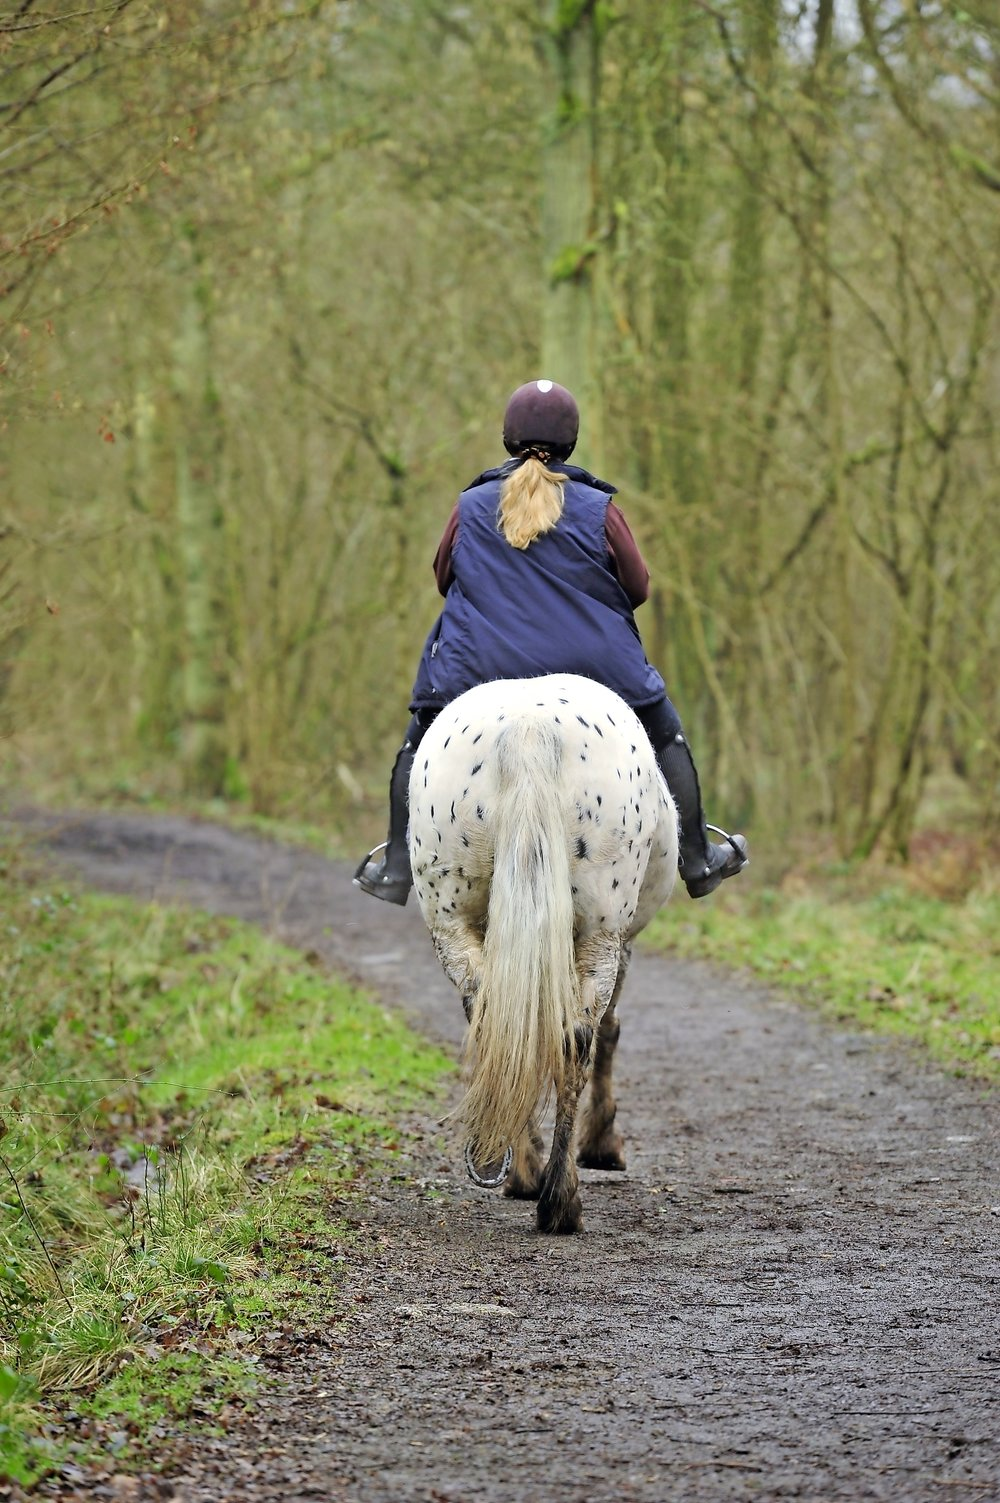 A fat horse is an 'at risk' horse